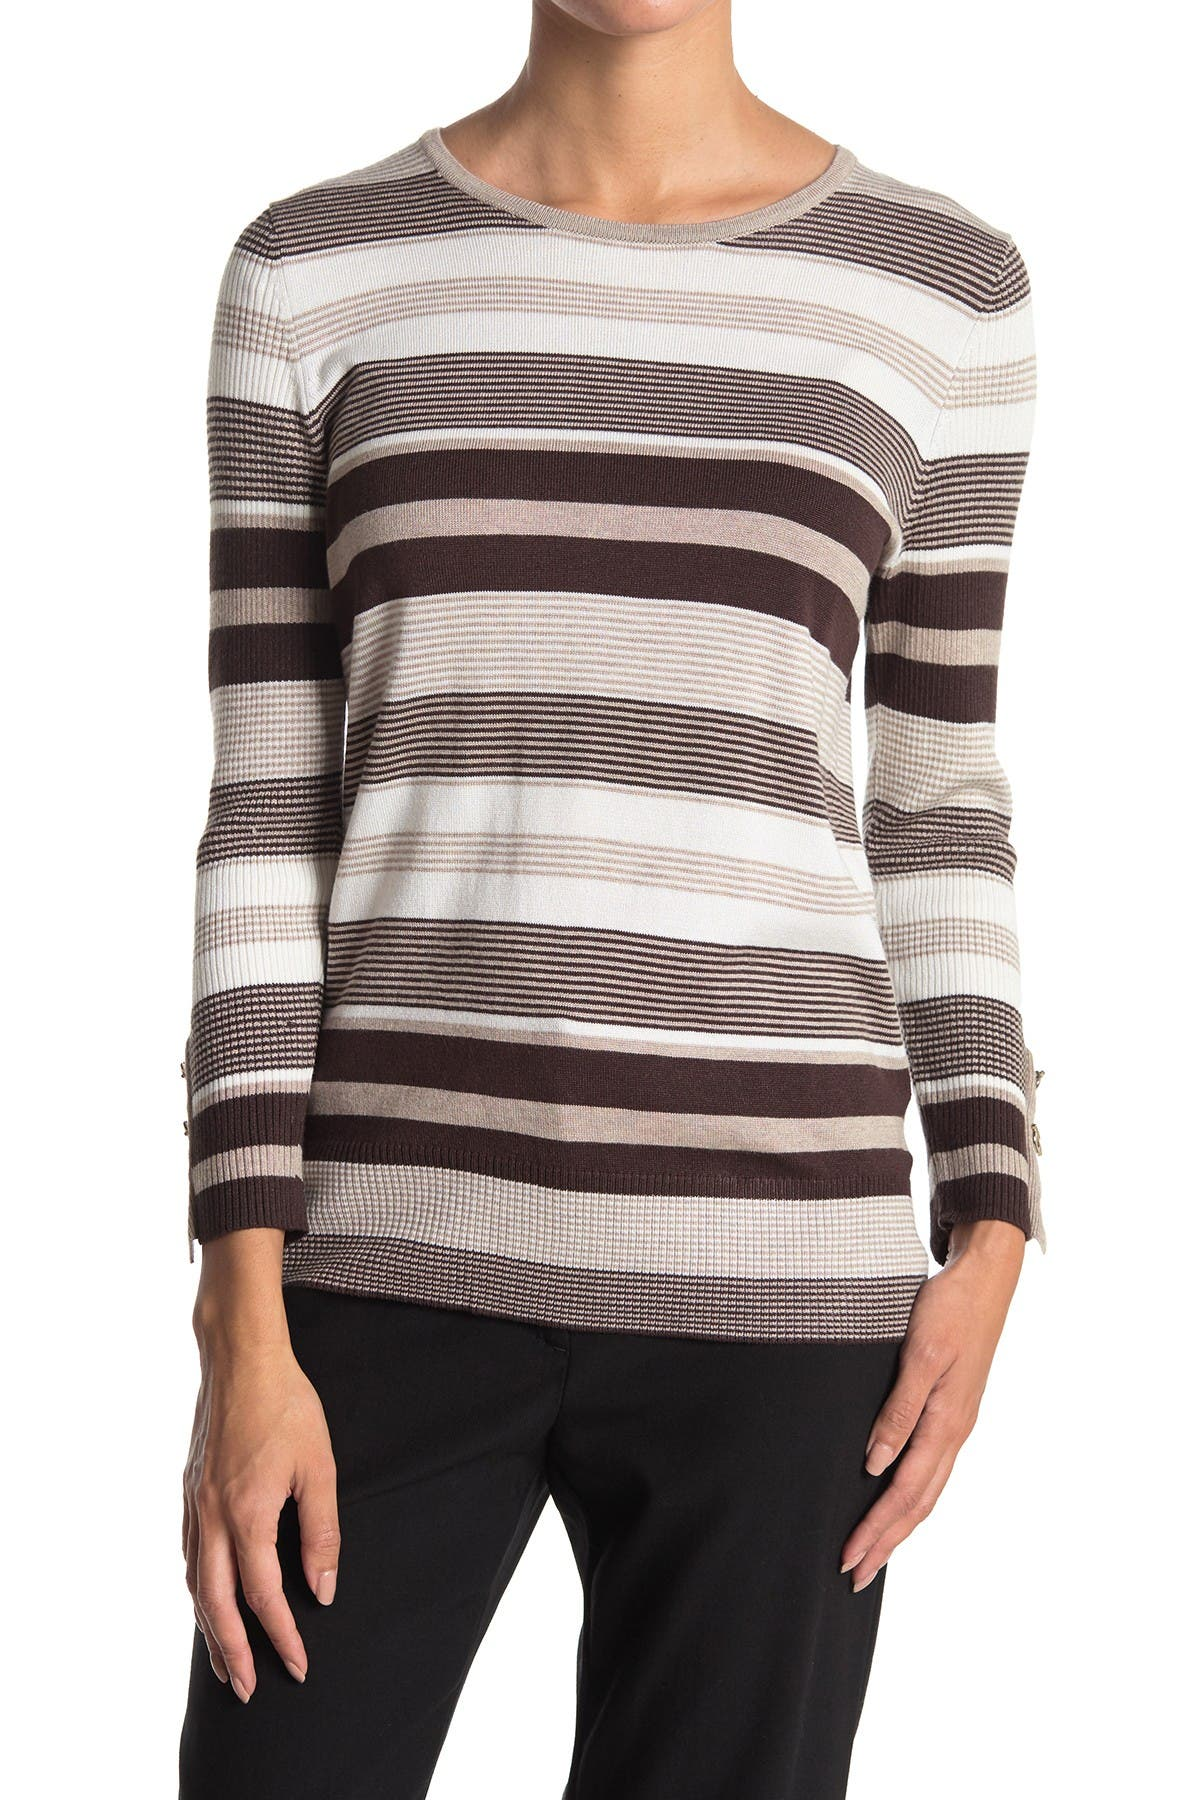 Image of JOSEPH A Striped Boatneck Sweater